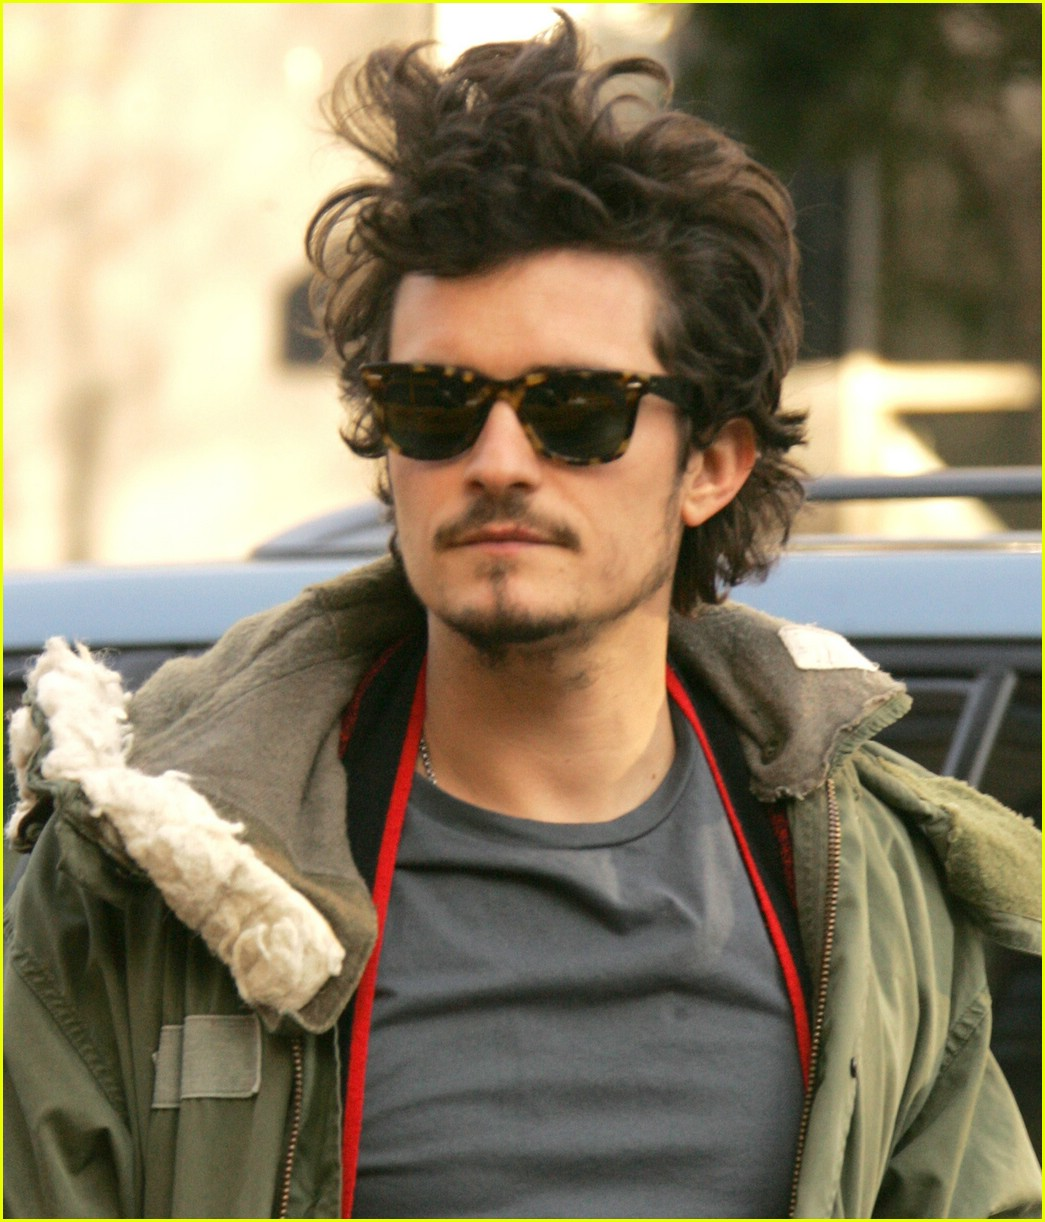 Orlando Bloom - Photo Set